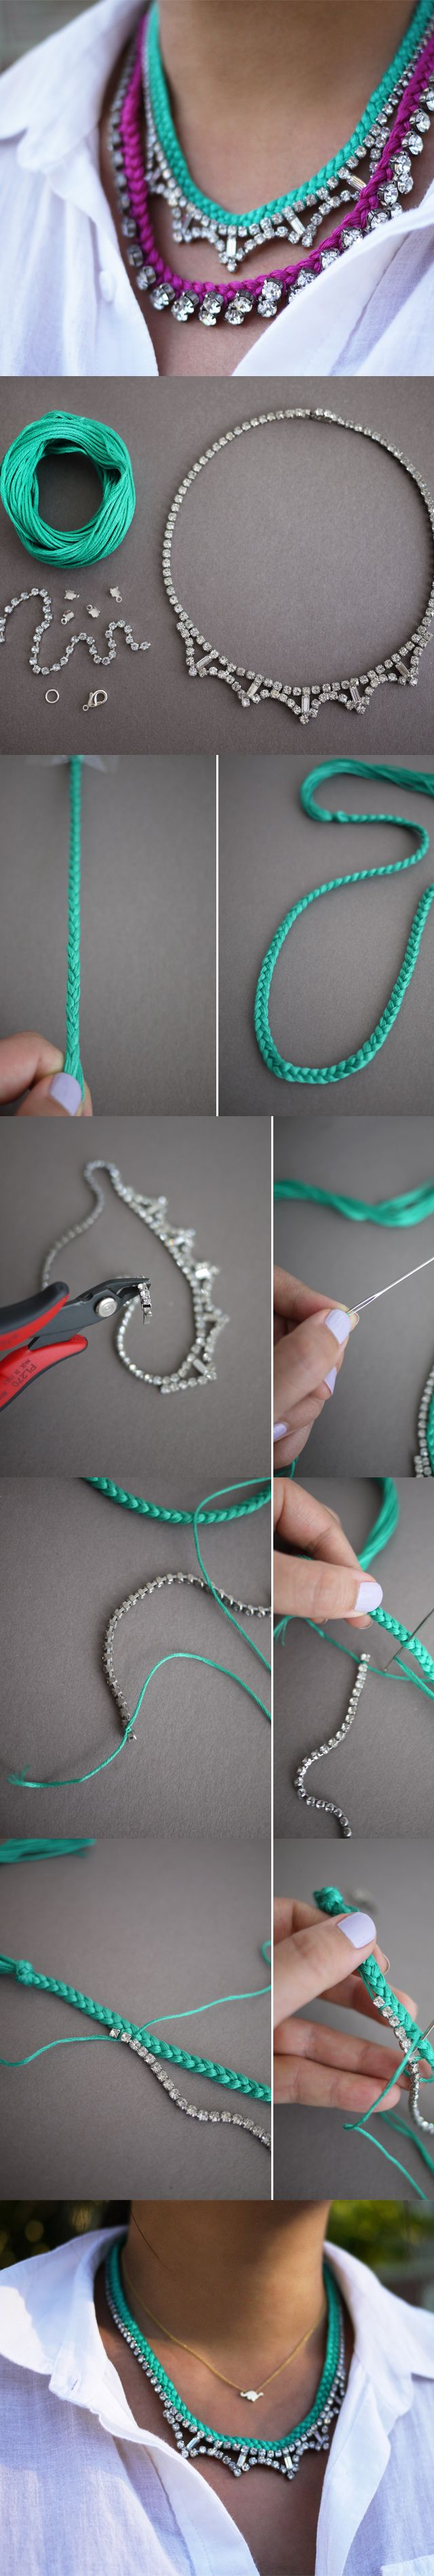 DIY Braided Rhinestone Necklace, DIY! The Most Beautiful NECKLACE – Do It Yourself Ideas